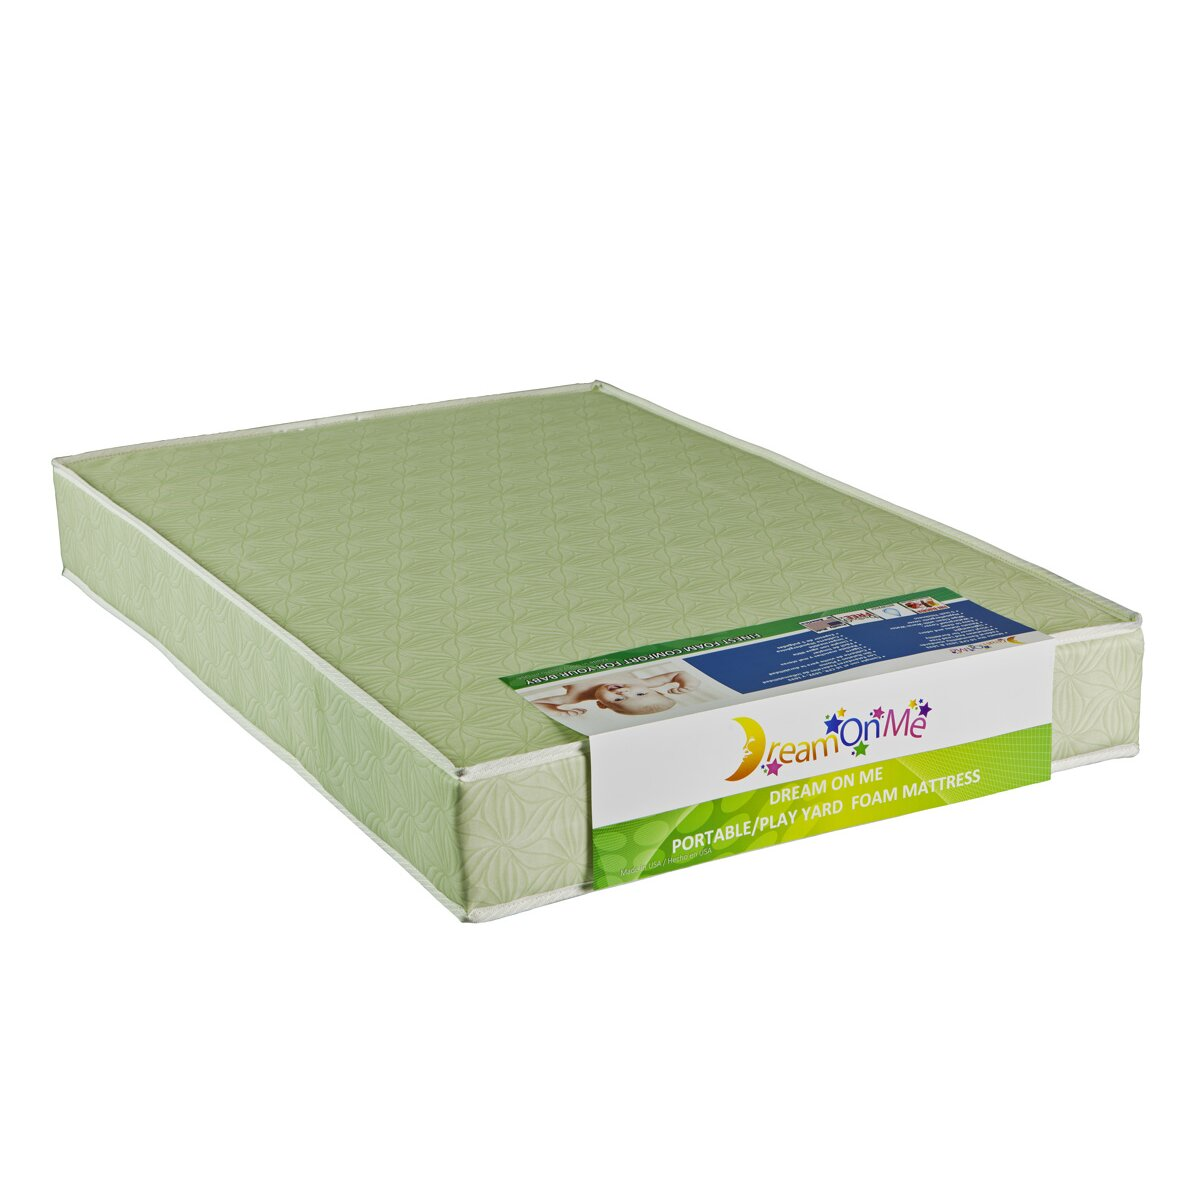 "Dream On Me 5"" Two-Sided Portable Crib Foam Mattress ..."